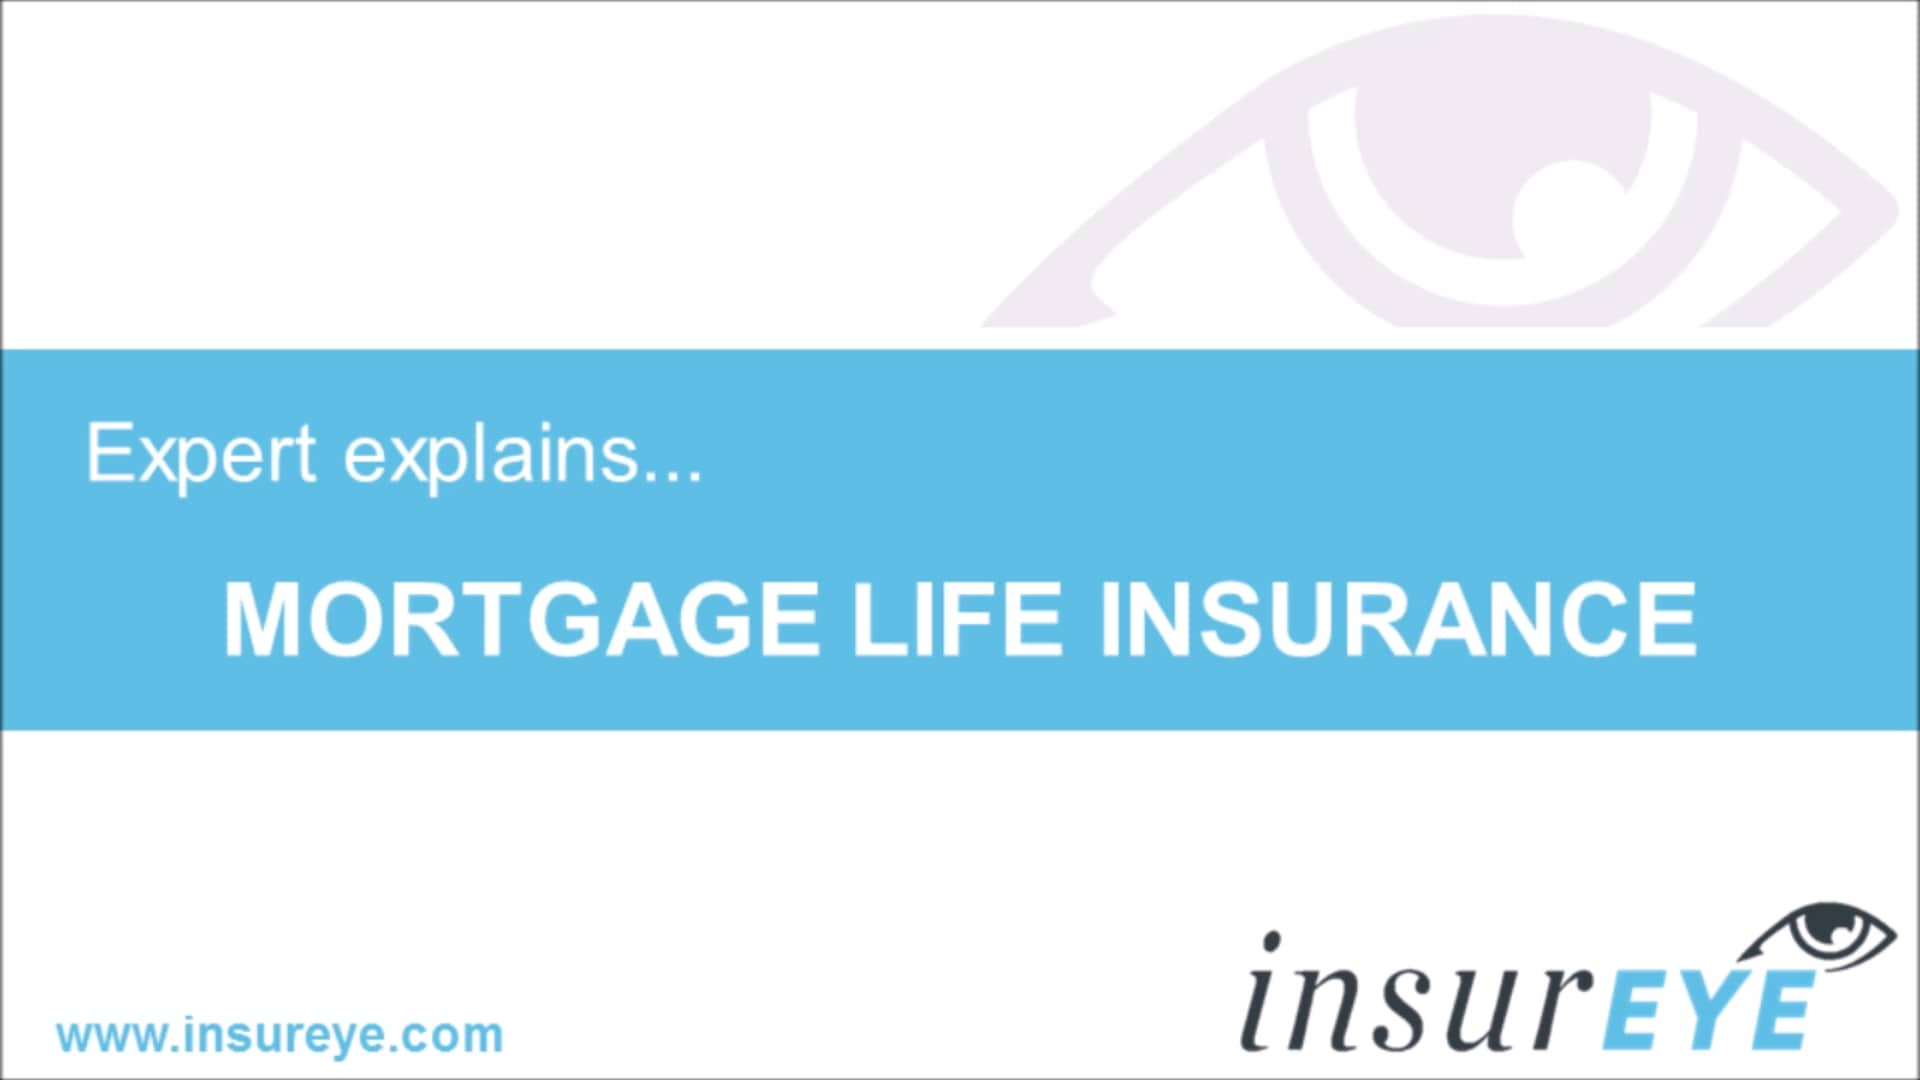 Mortgage Life Insurance Quote Cibc Mortgage Life Insurance Rates  Raipurnews